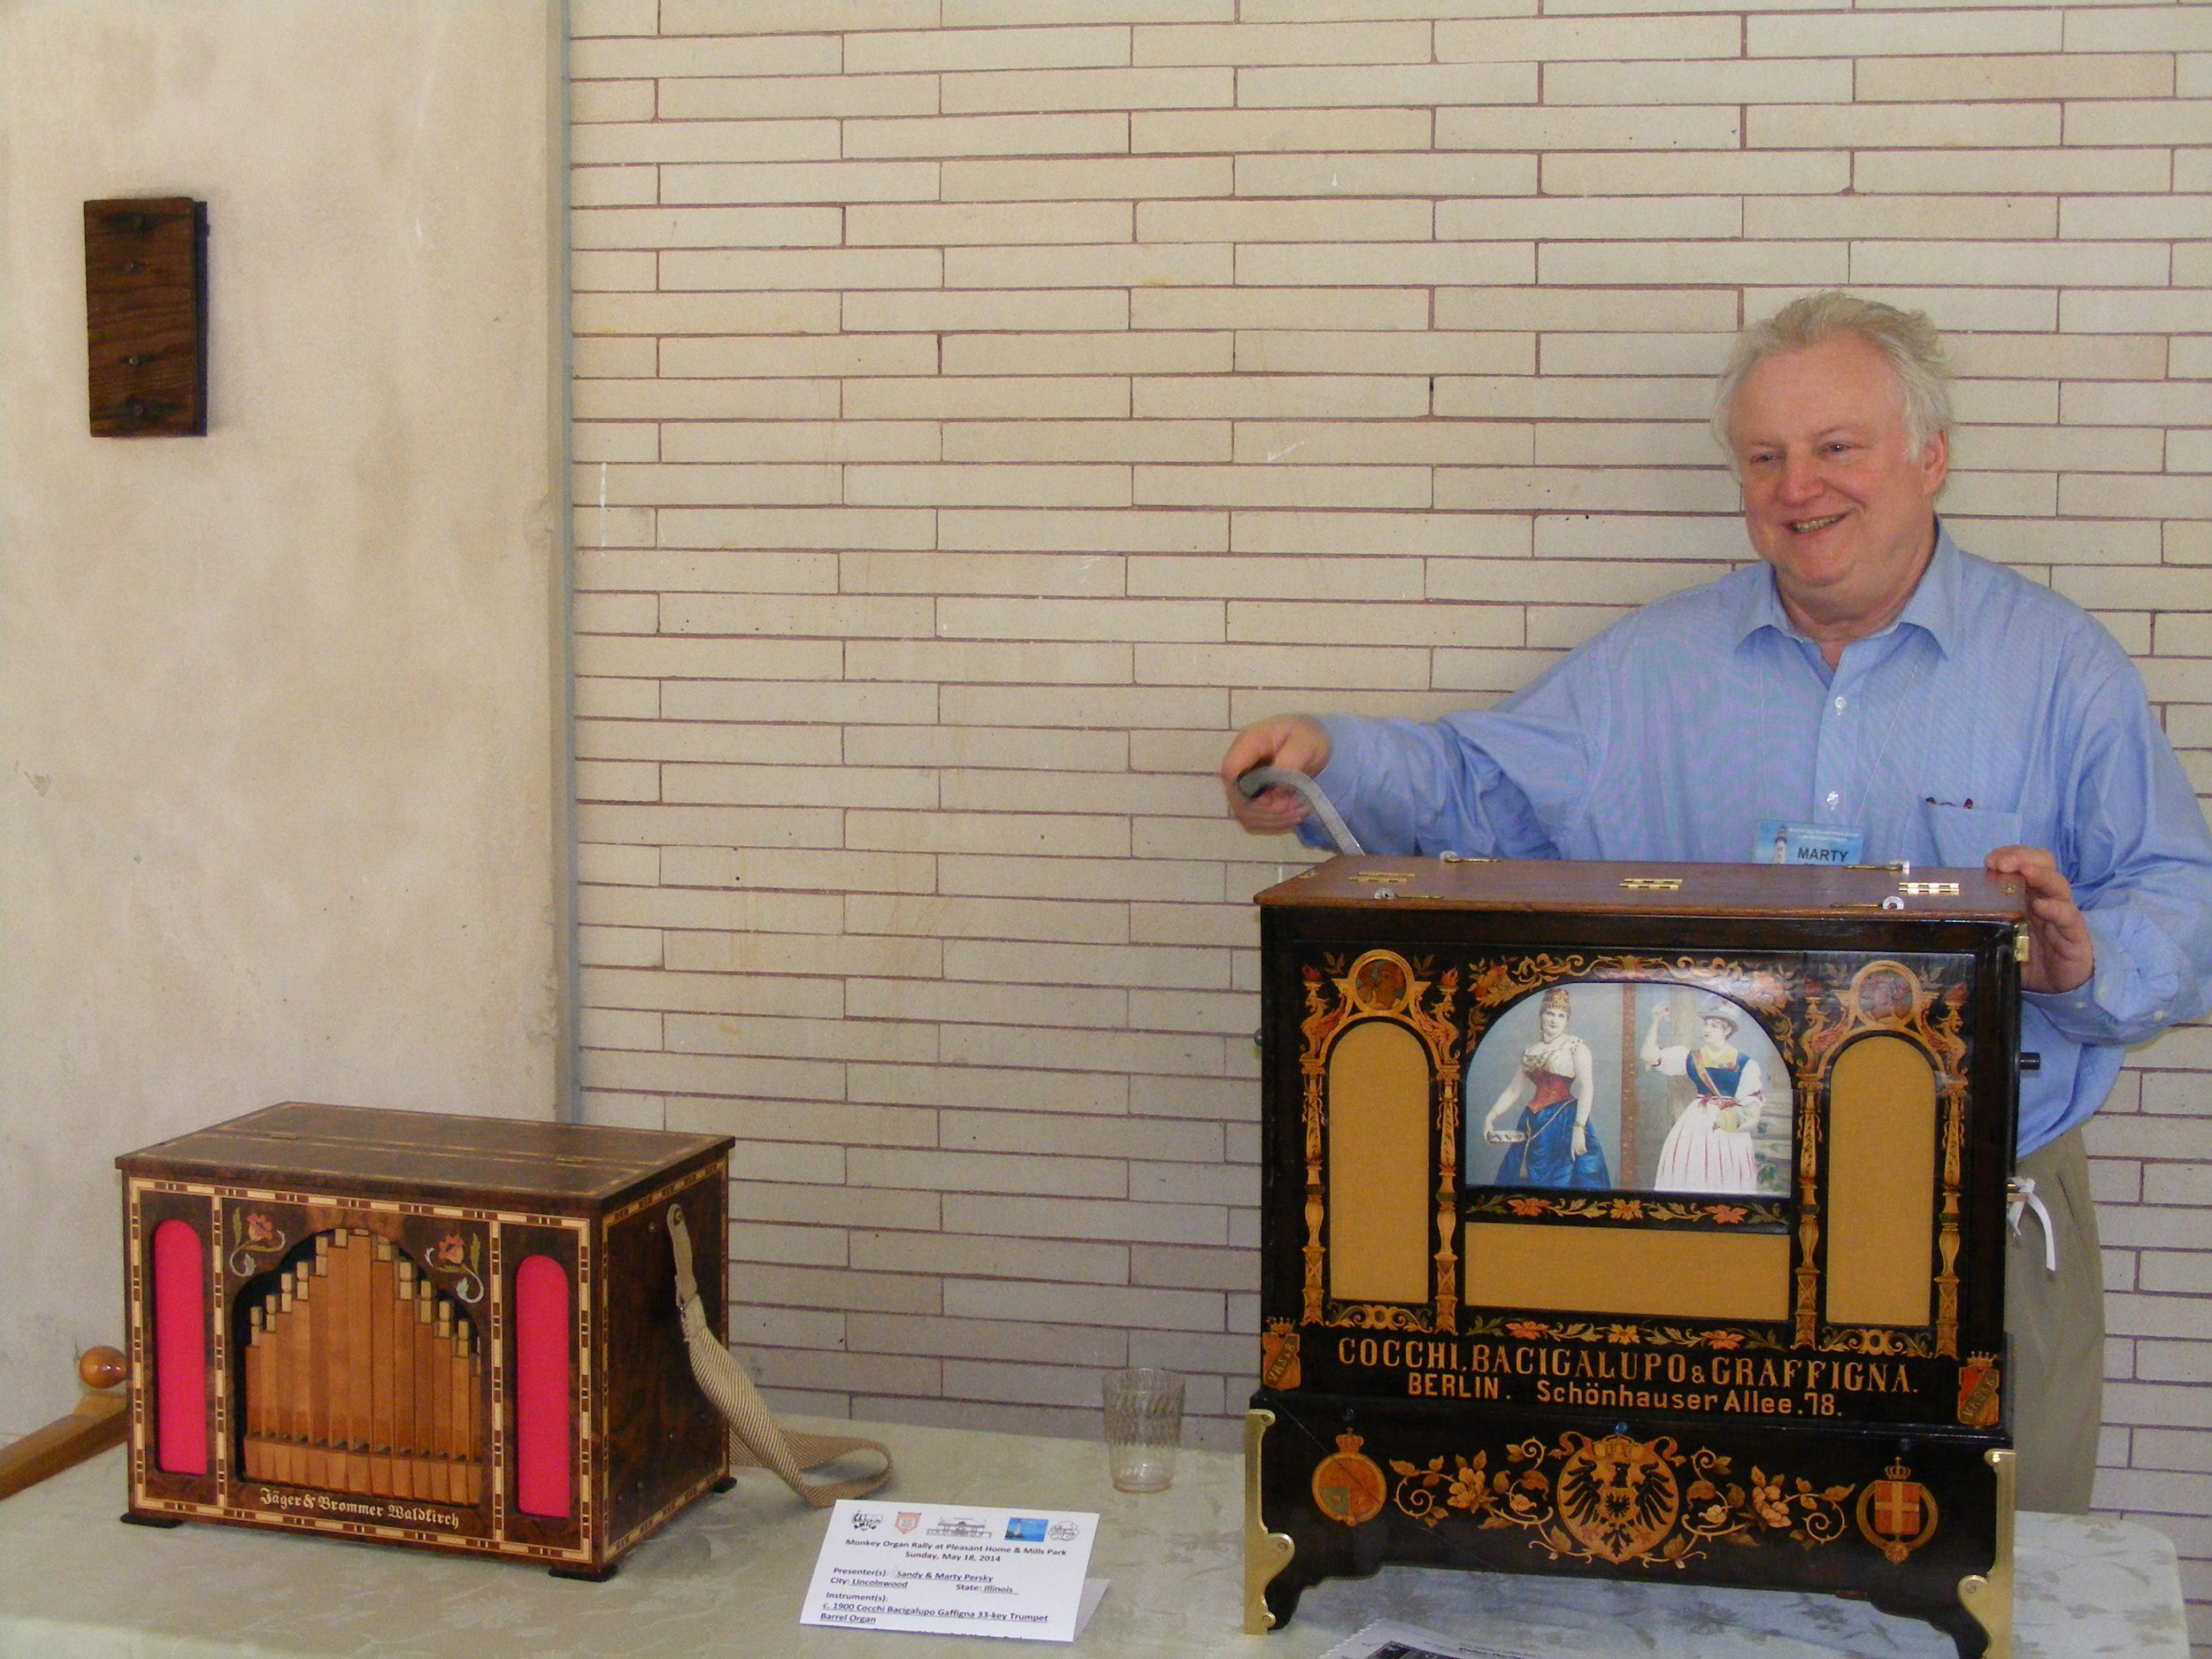 Playing the   Bacigalupo   trumpet organ.